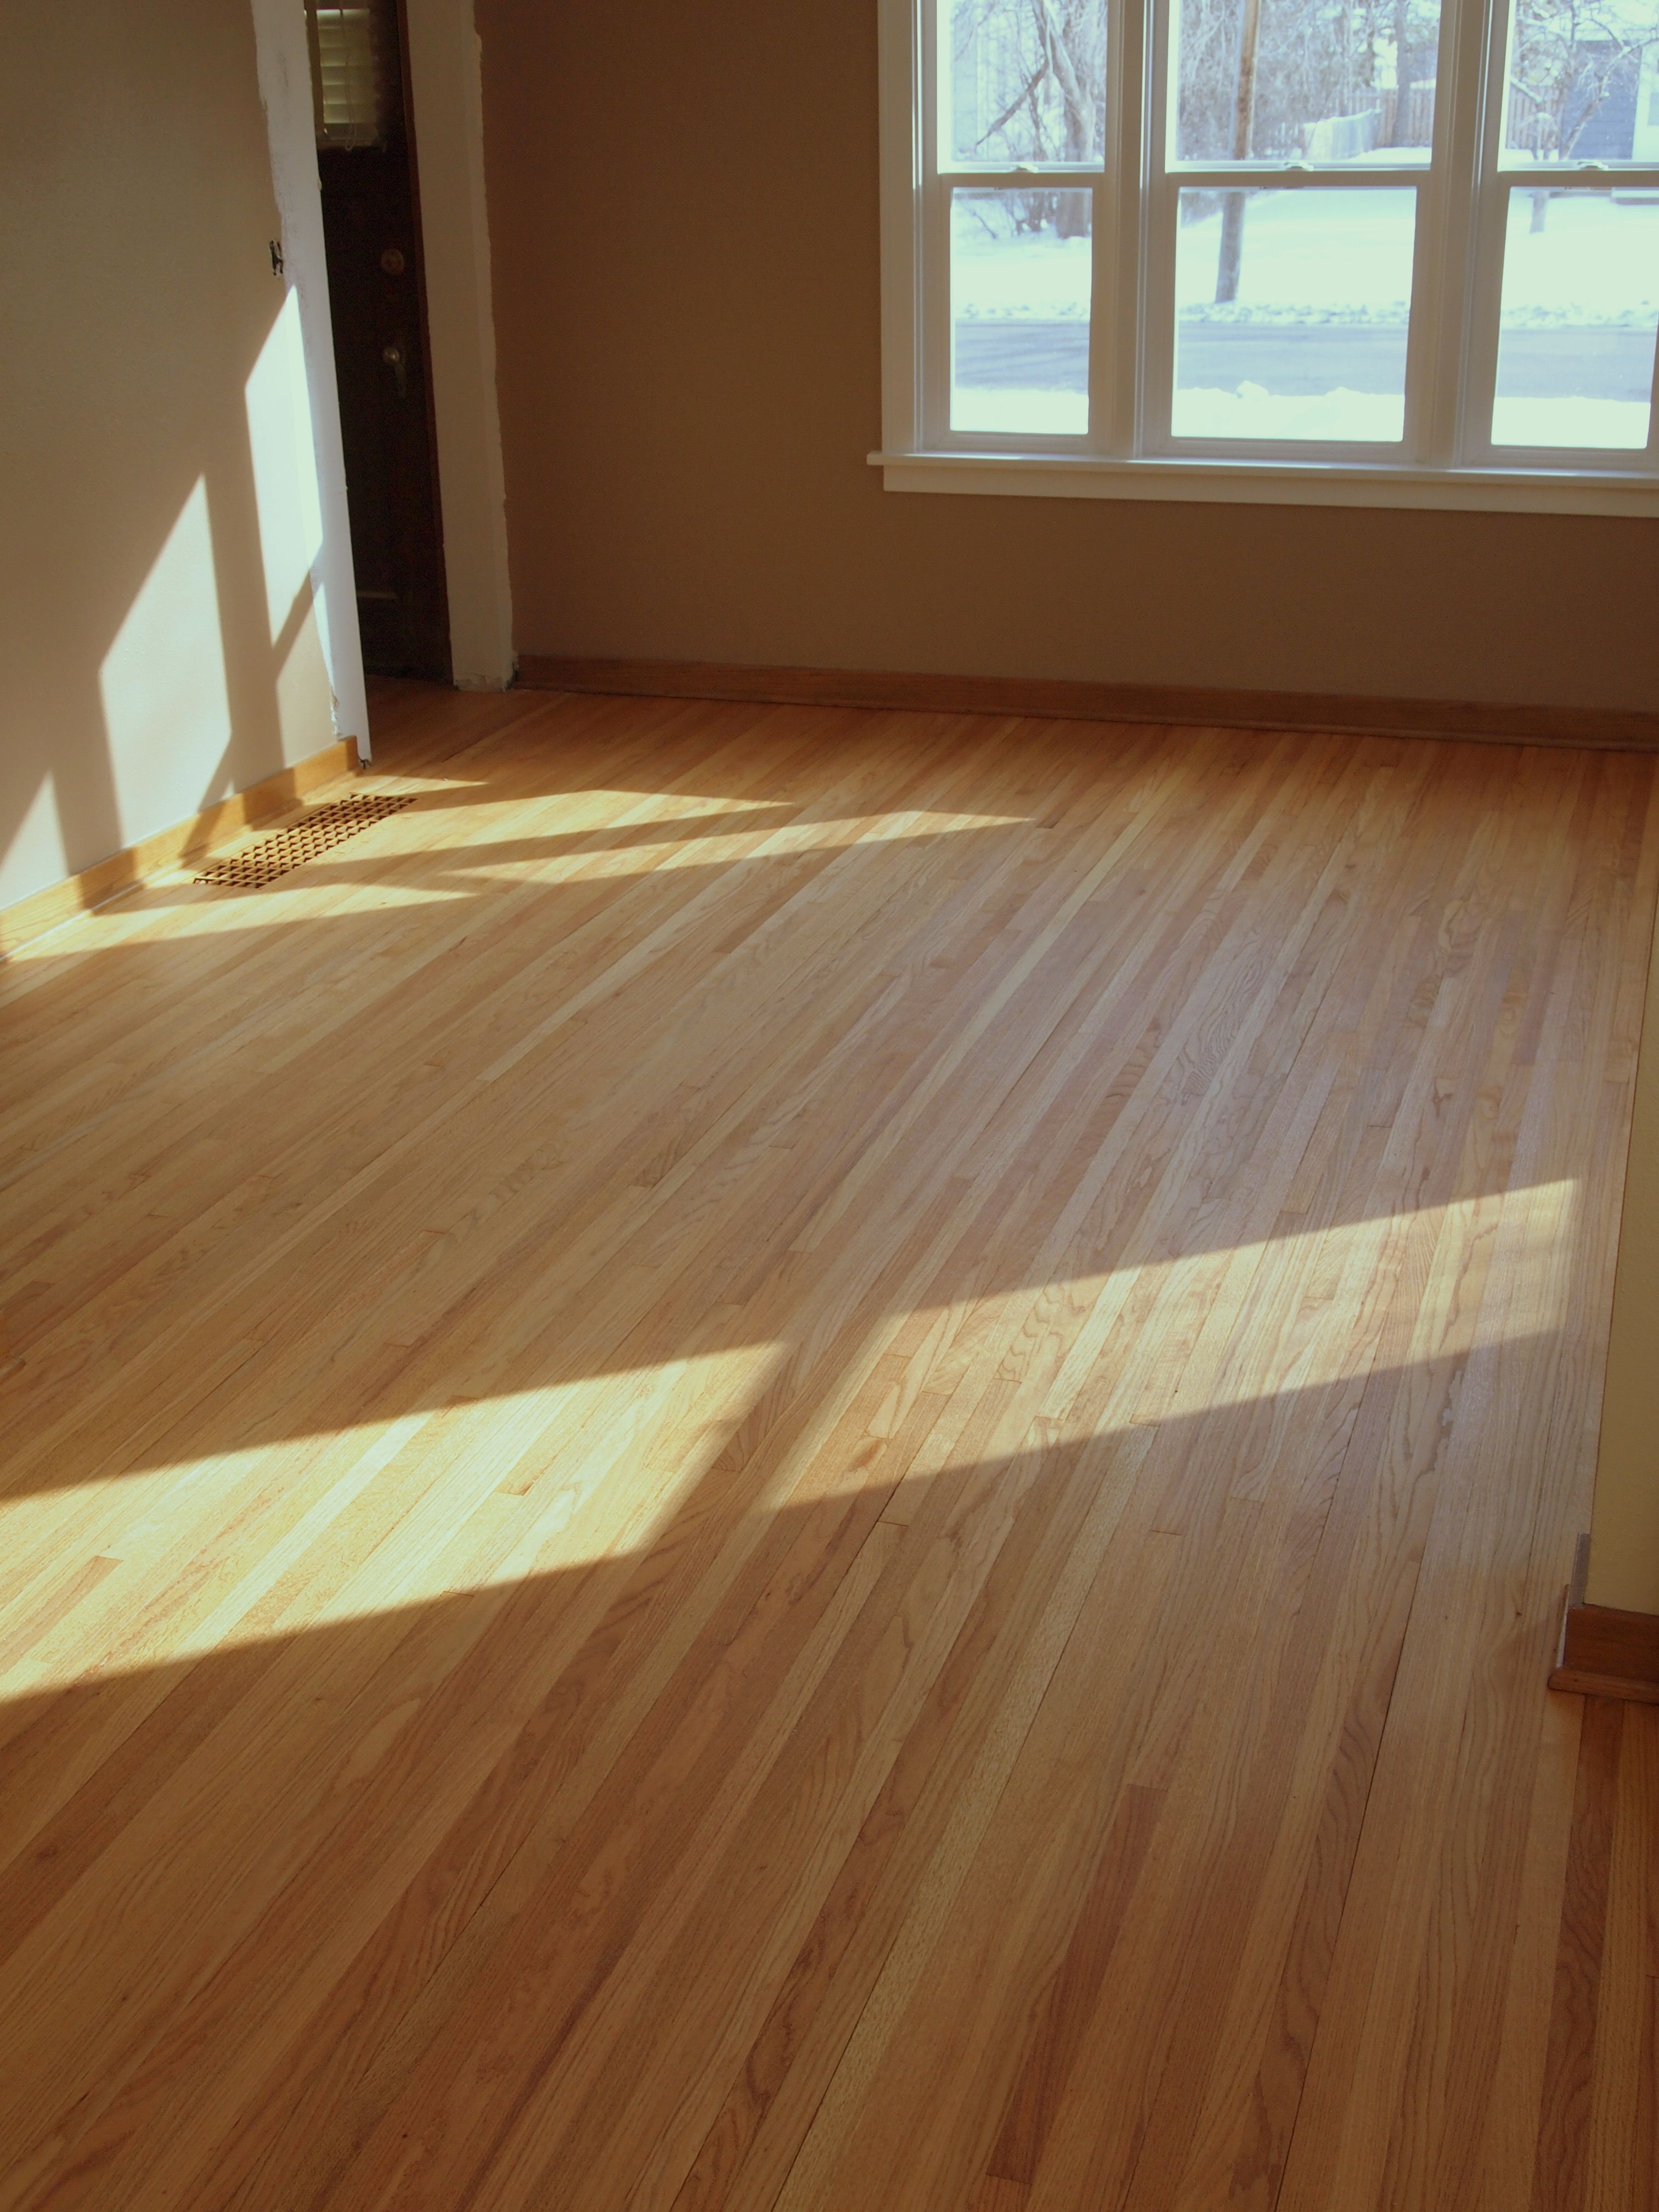 Linoleum Flooring There Wood Floors In Your House Fargo